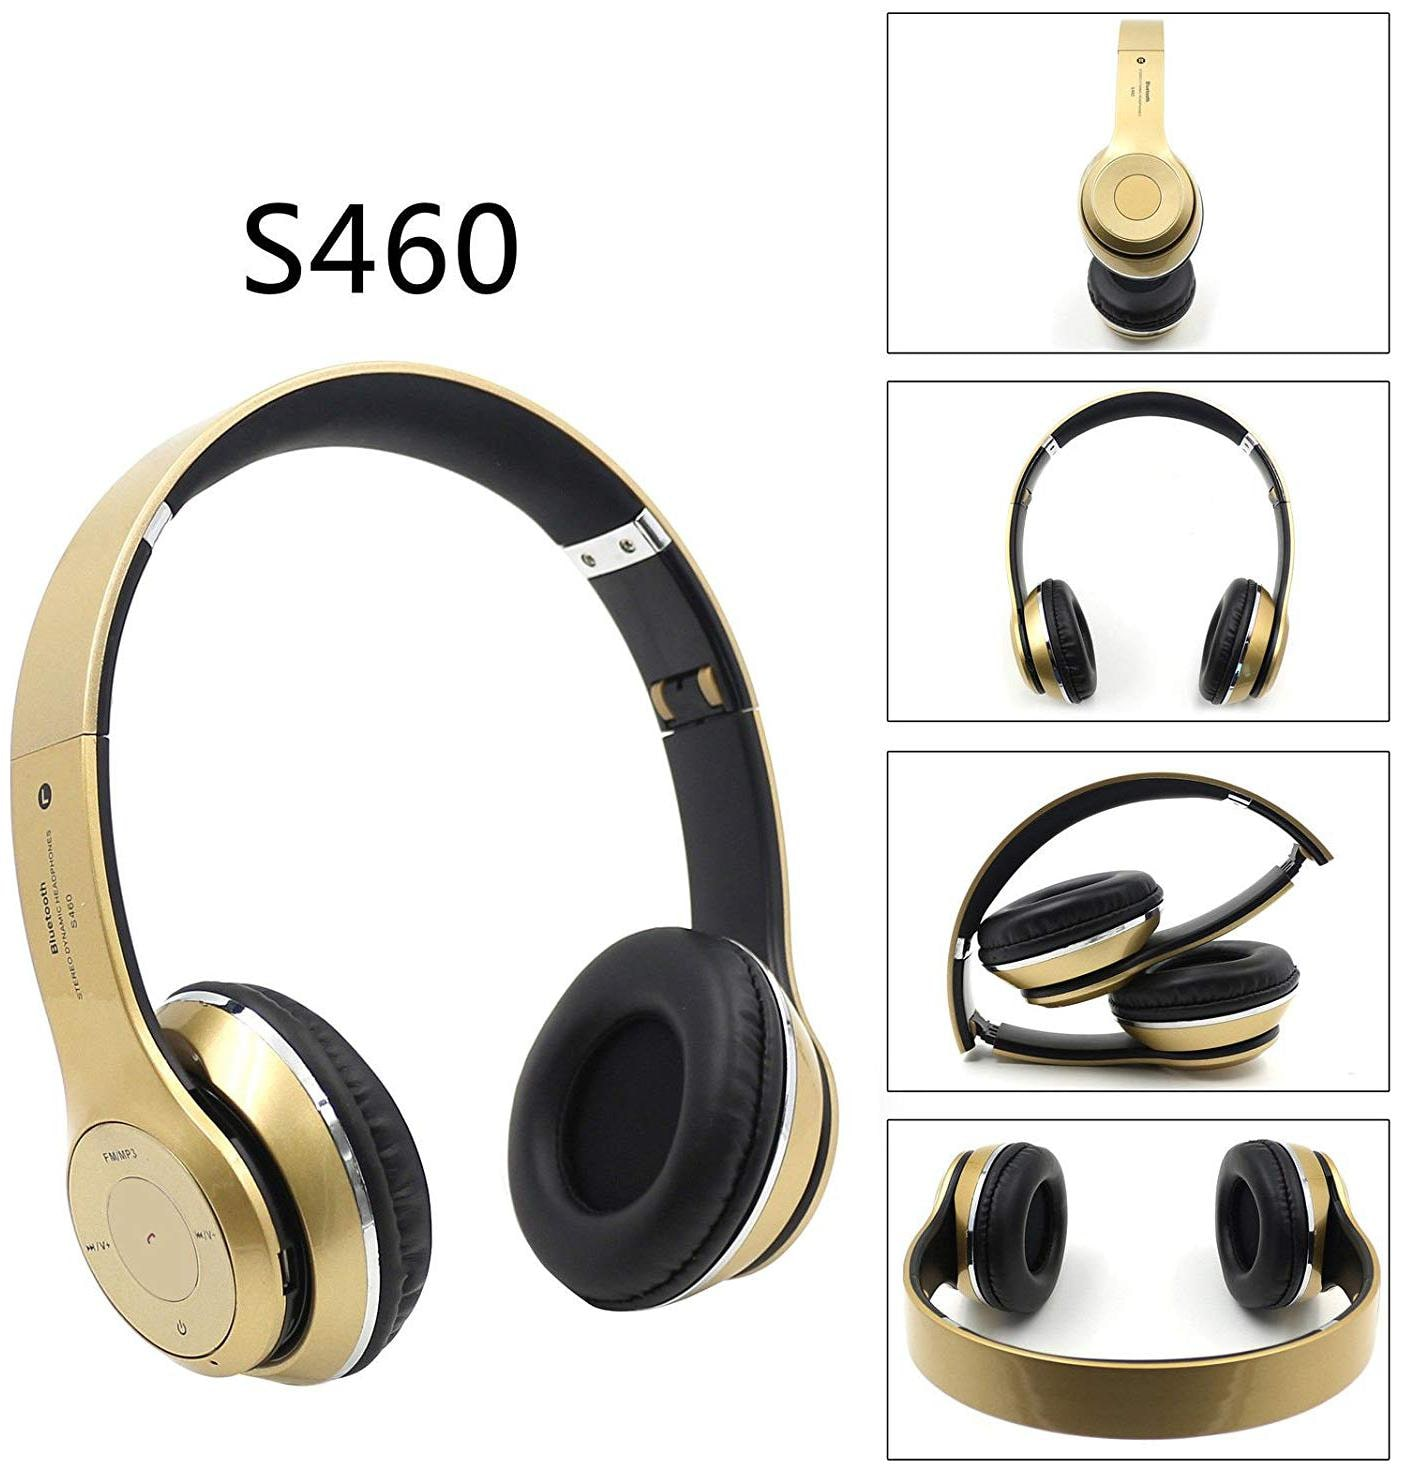 Crystal Digital S460 SPORTS HEADSET Over ear Bluetooth Headsets   Gold